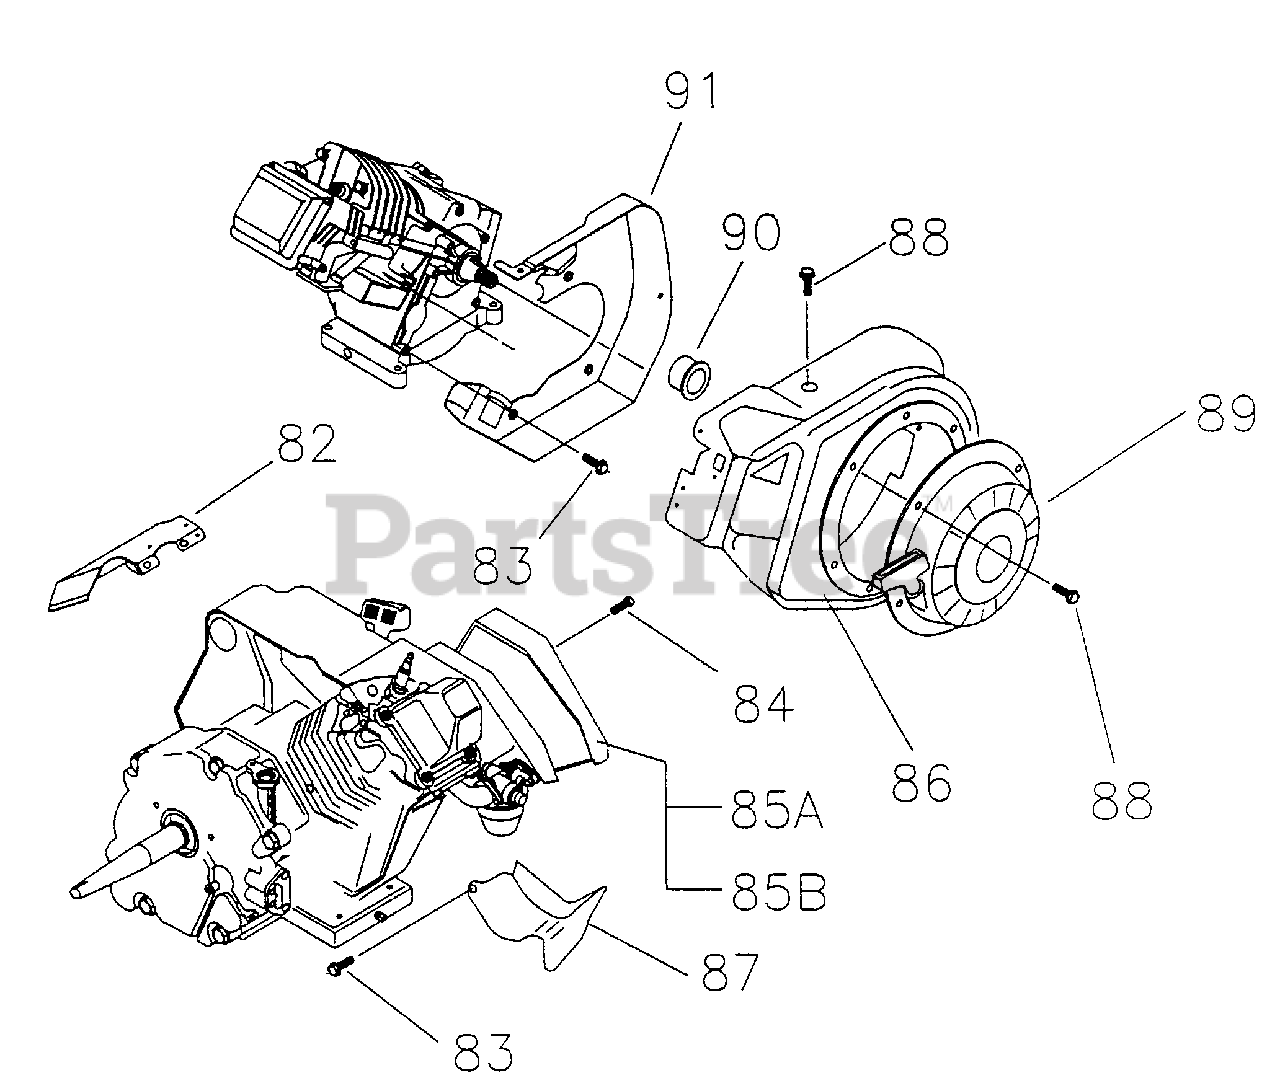 [DHAV_9290]  Craftsman 580.763000 (0766-0) - Craftsman 3,000 PSI Pressure Washer Recoil  Starter Parts Lookup with Diagrams   PartsTree   Wiring Diagram For Craftsman Pressure Washer      PartsTree